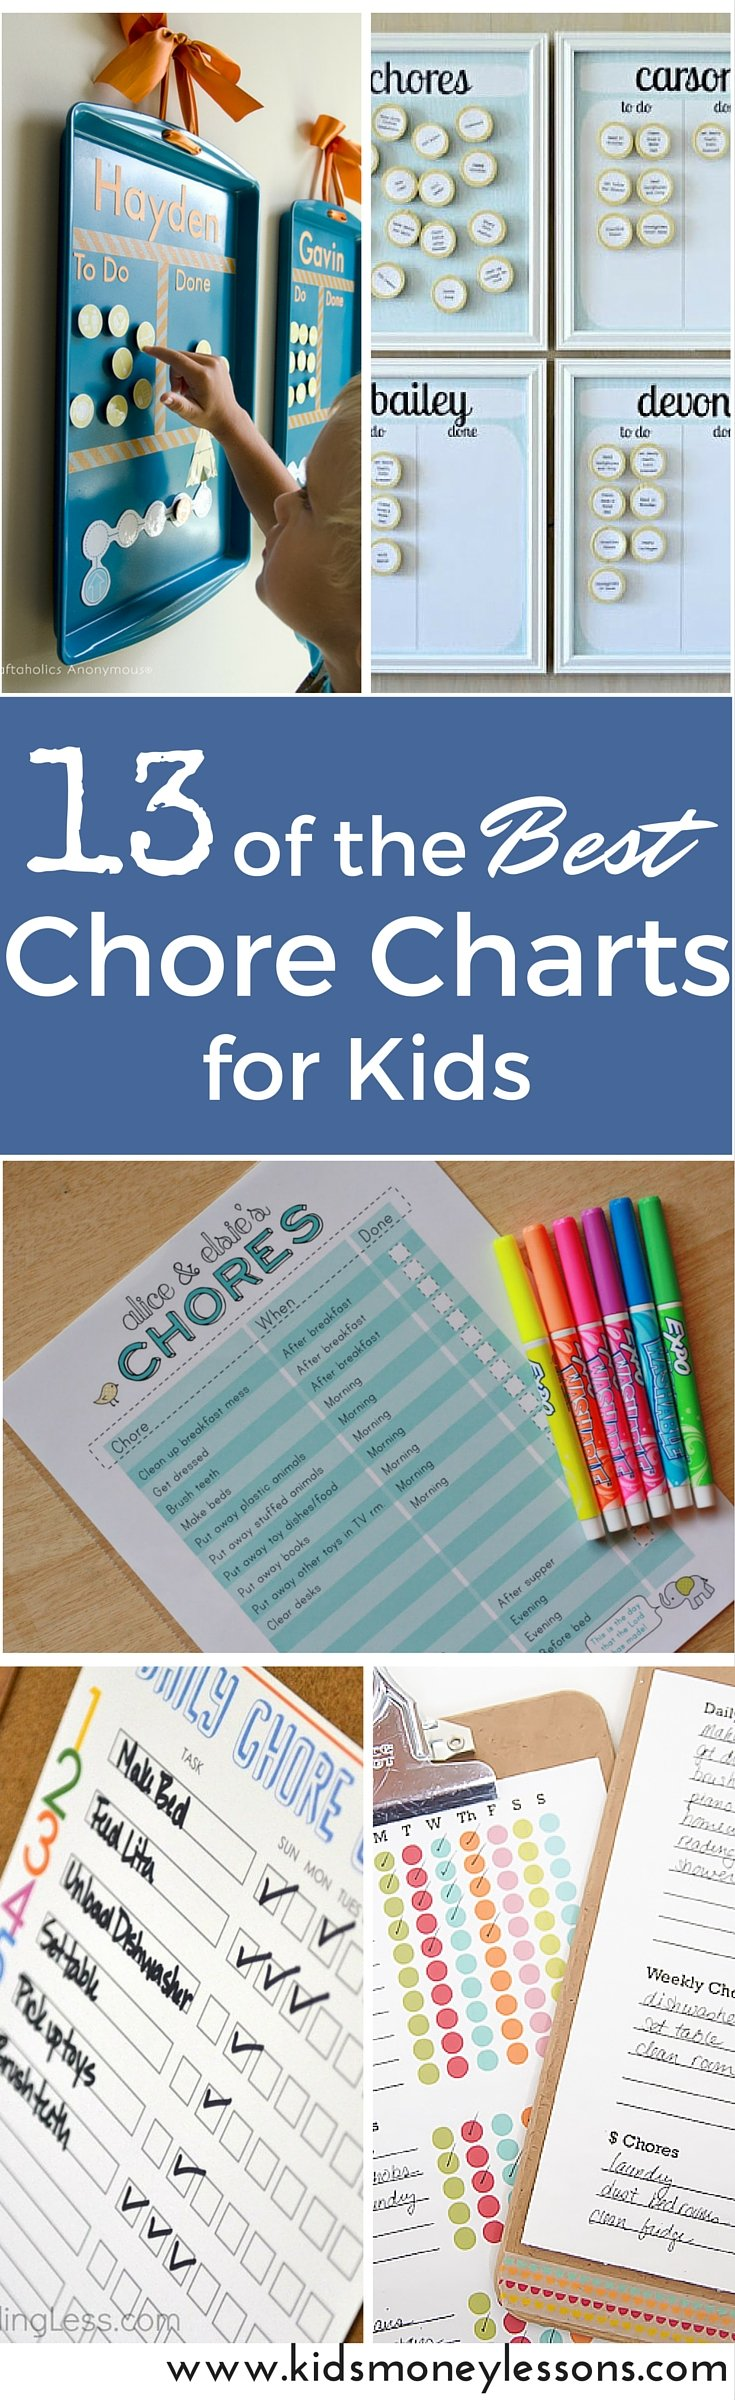 Chores are a great way to teach kids responsibility, independence, and self-sufficiency. Getting started with kids assigned chores can be challenging, but getting organized can help. Use one of these chore charts for kids to get started. #chorecharts #chorechartforkids #chorechartideas